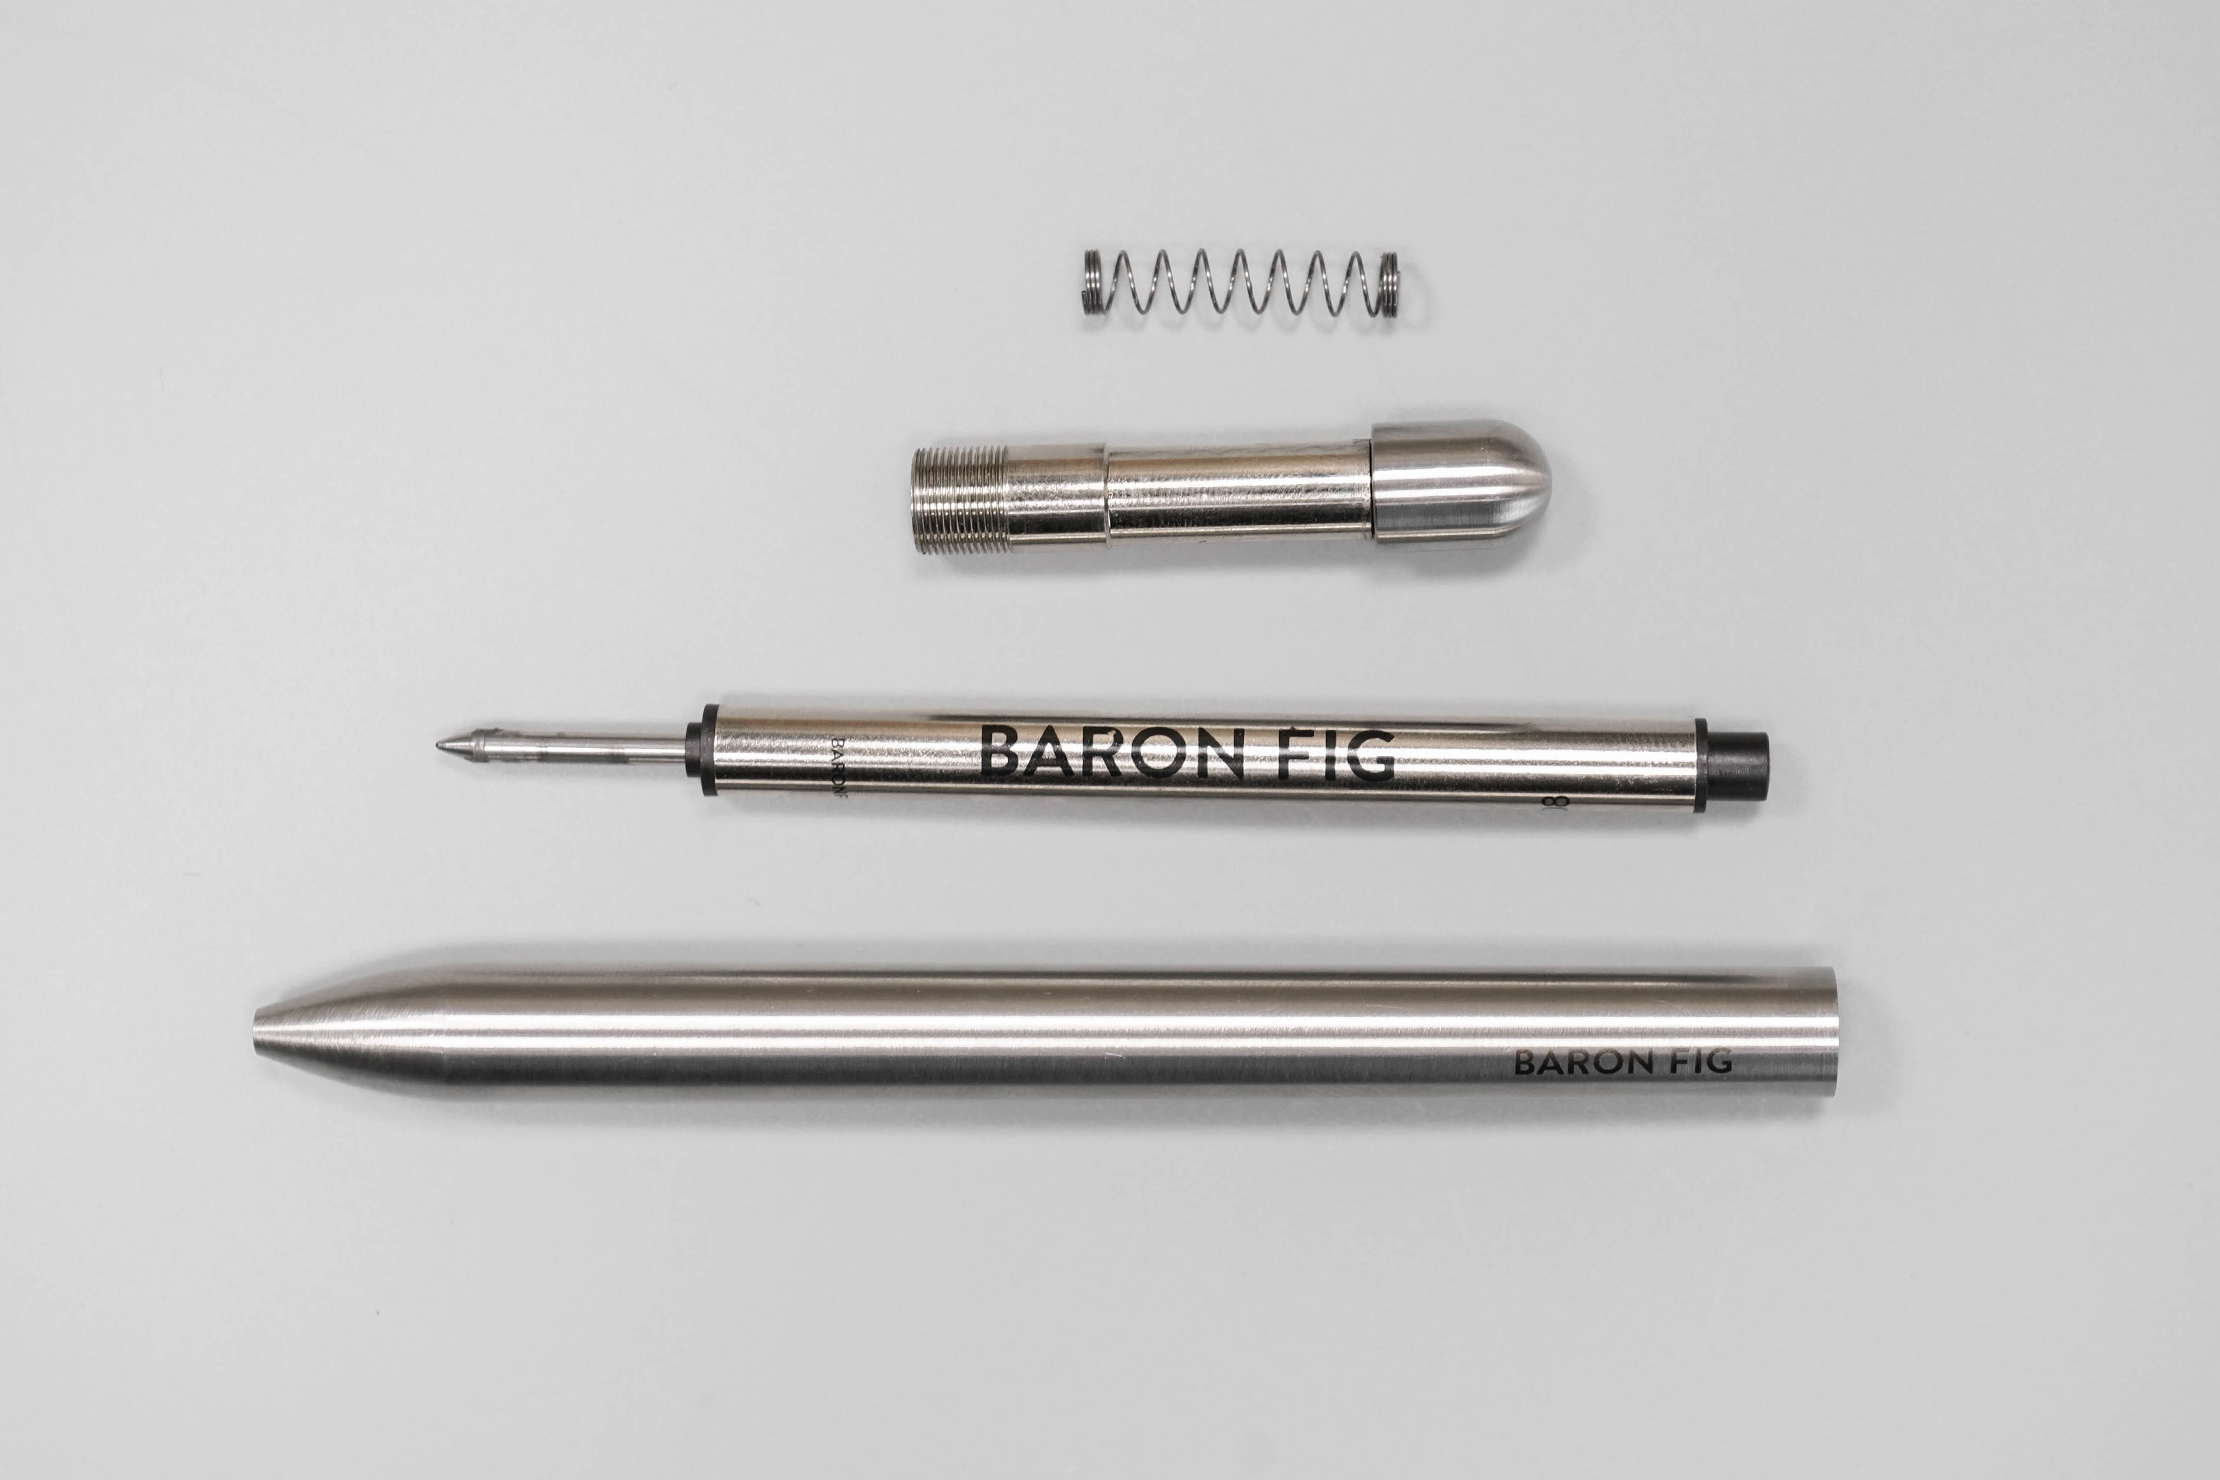 Baron Fig Squire Pen Assembly